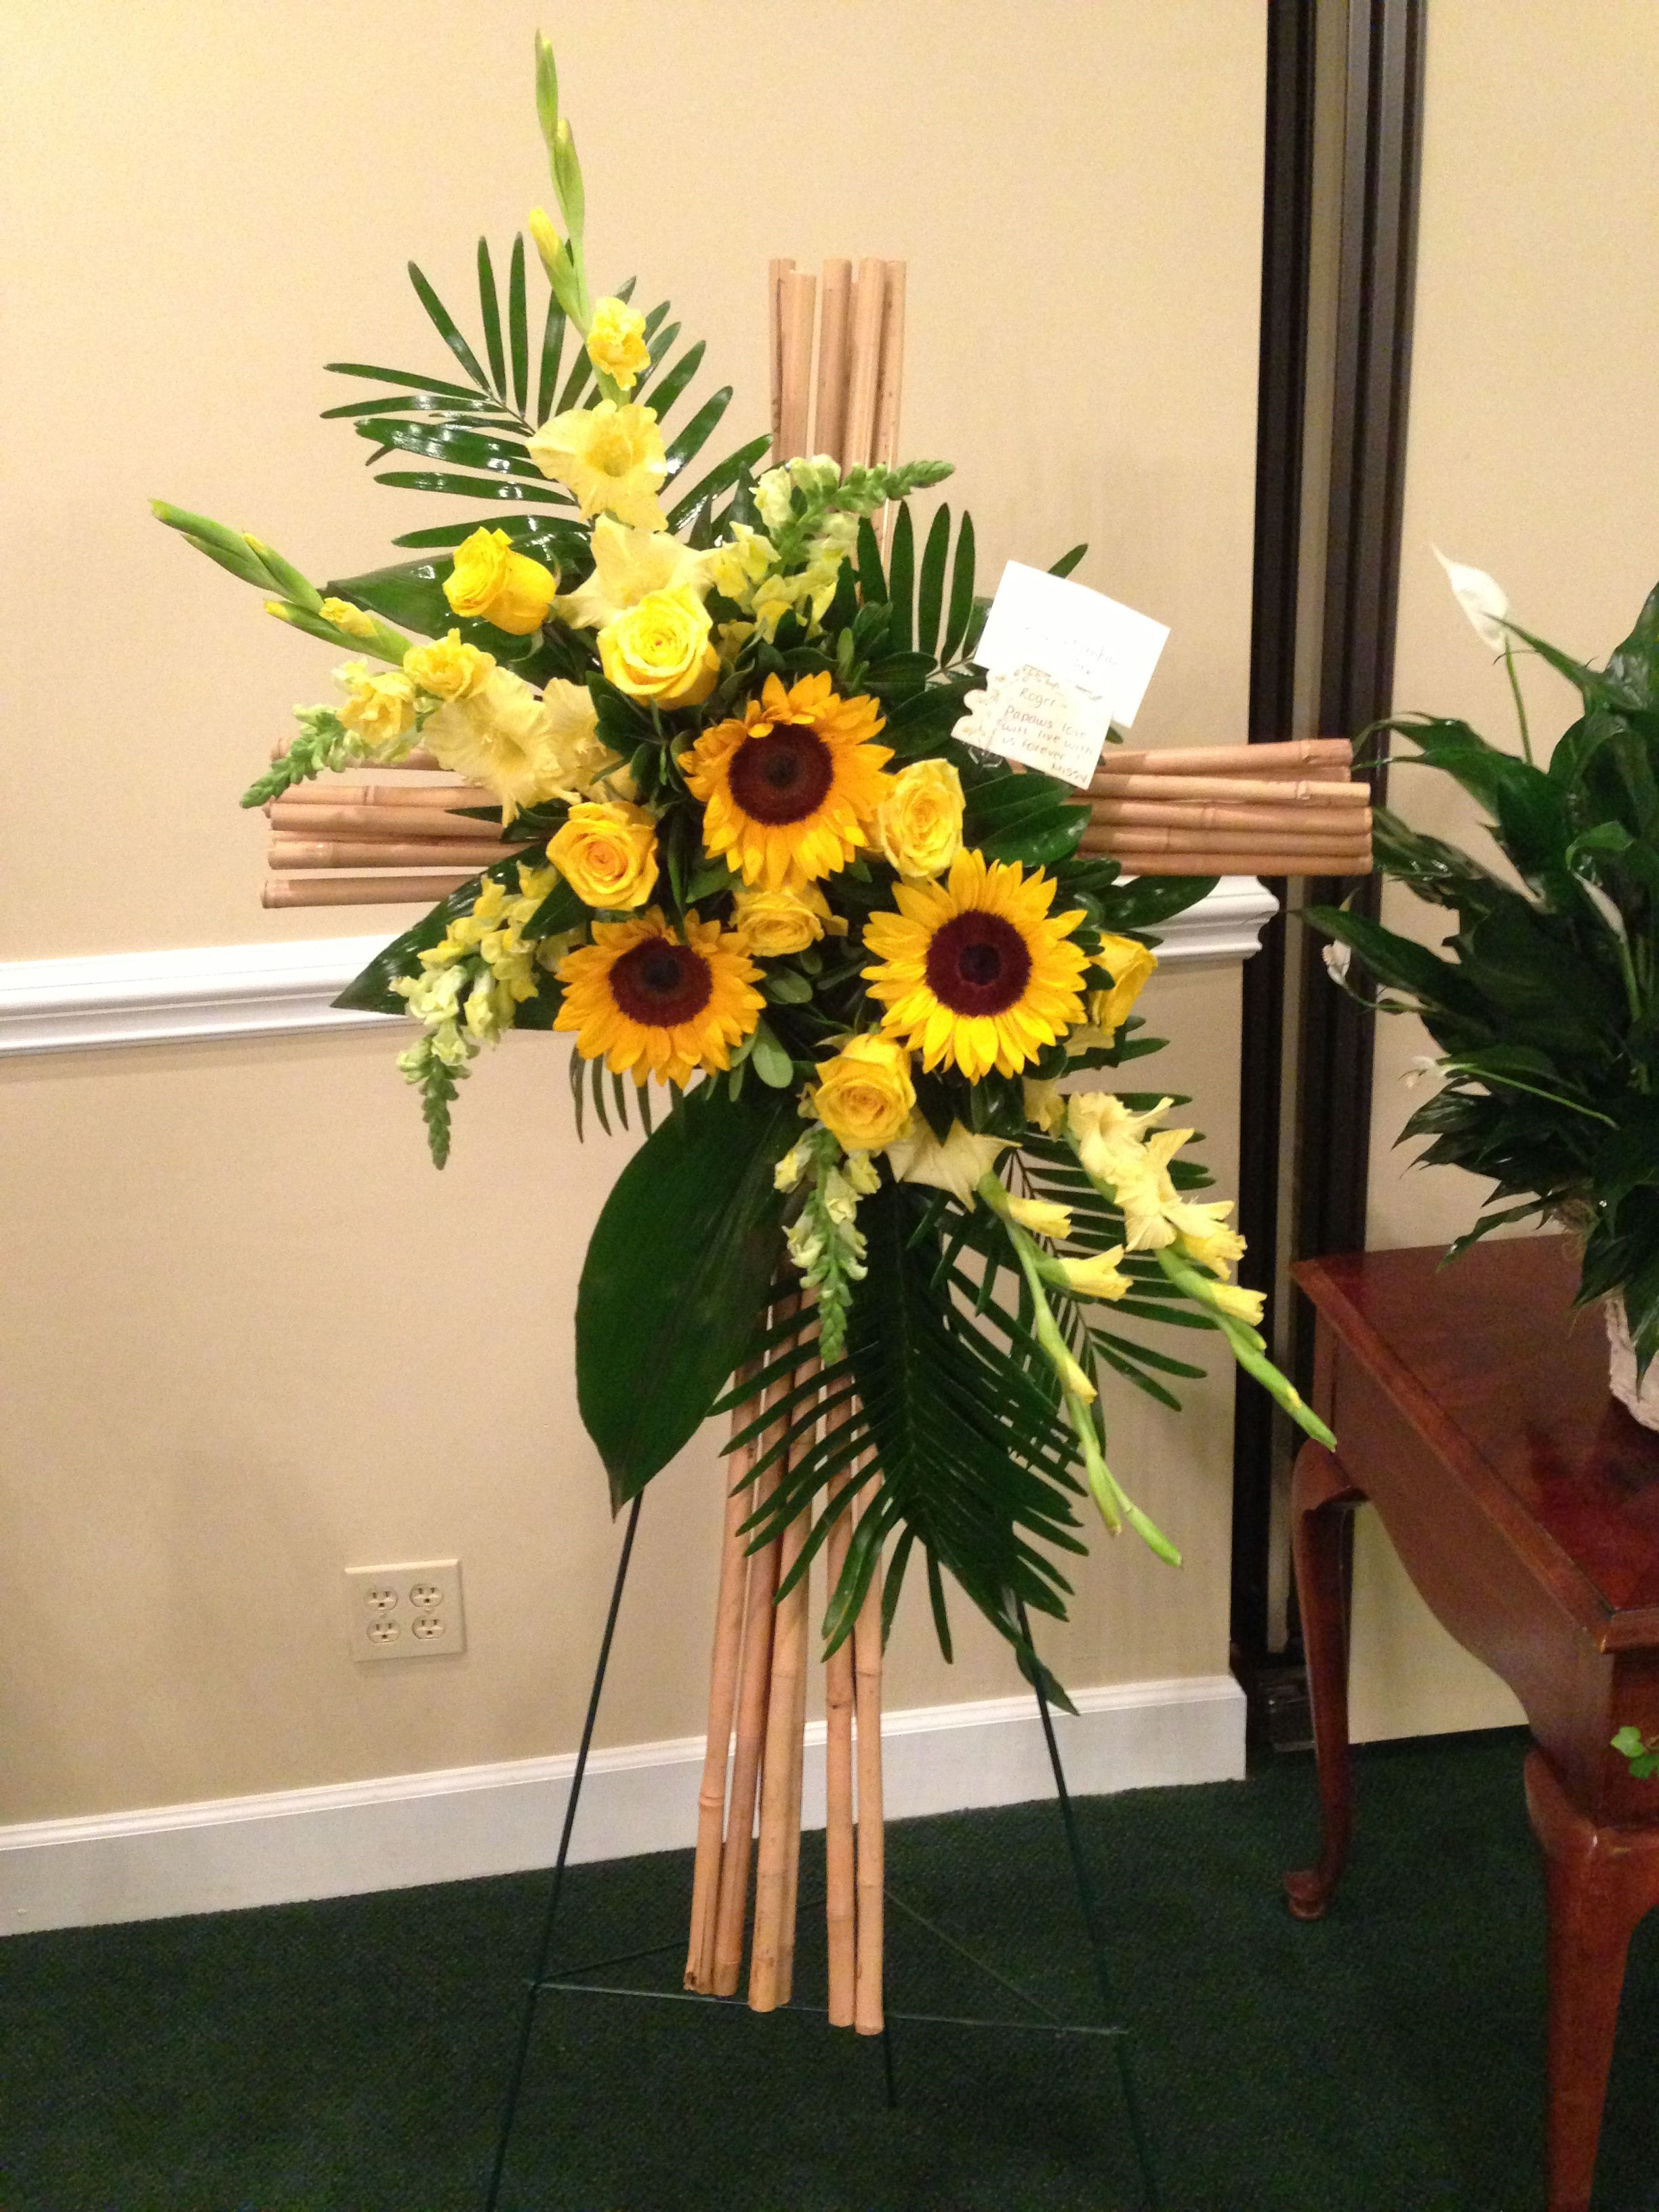 Breath taking funeral flowers love the rustic look of this breath taking funeral flowers love the rustic look of this arrangement izmirmasajfo